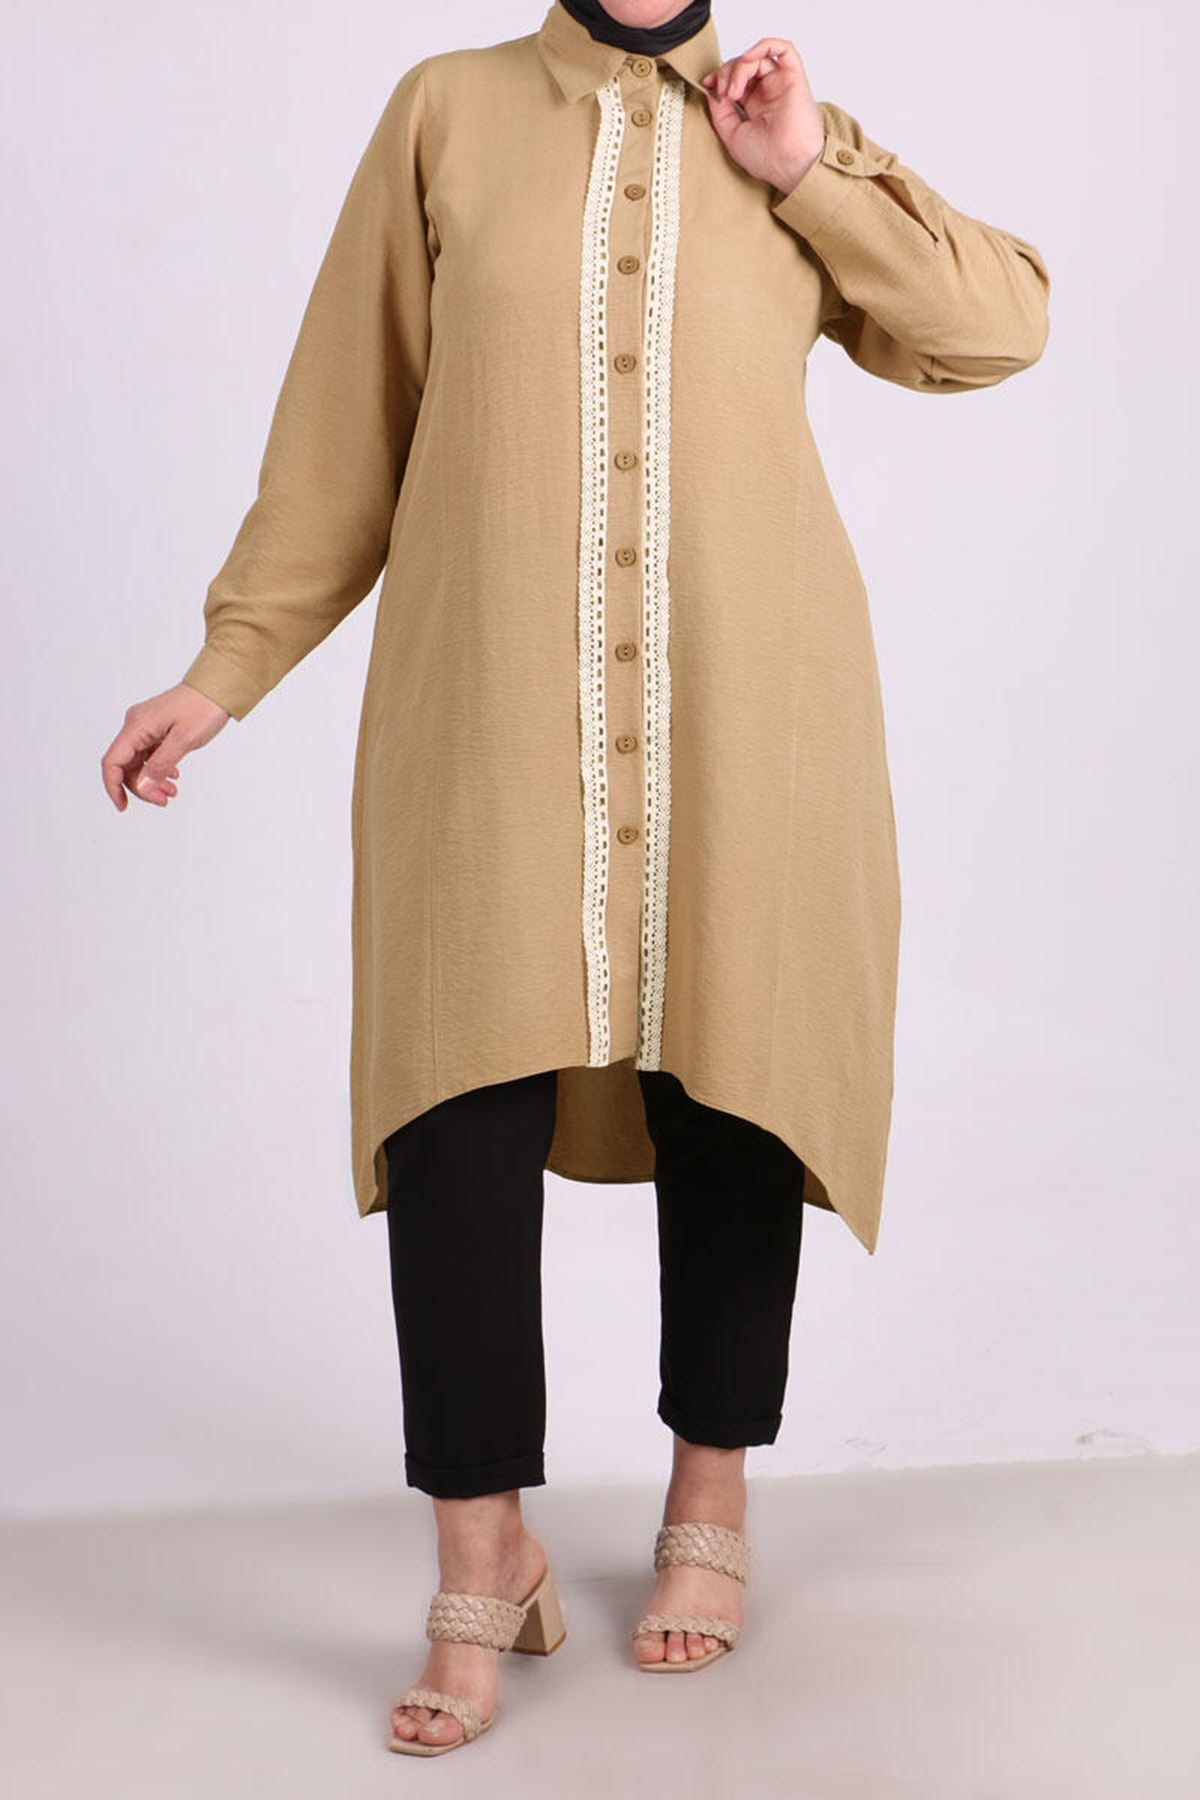 8429 Plus Size Lace Detailed Shirt - Milk Coffee